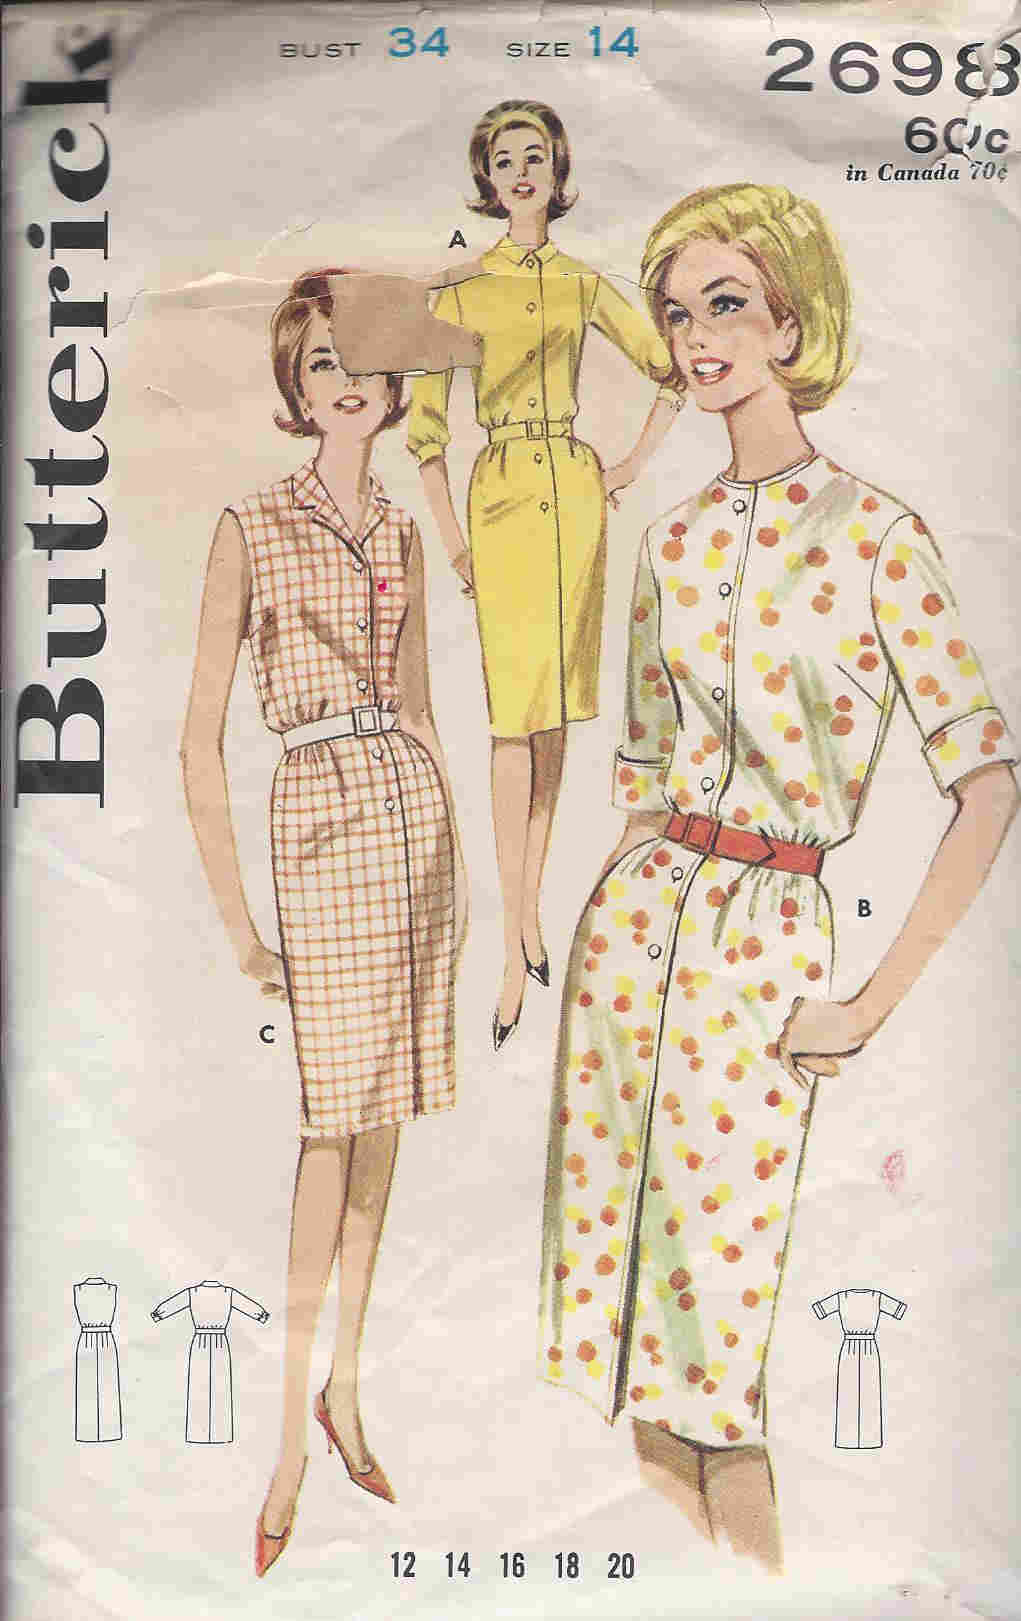 Shirtdress sewing pattern